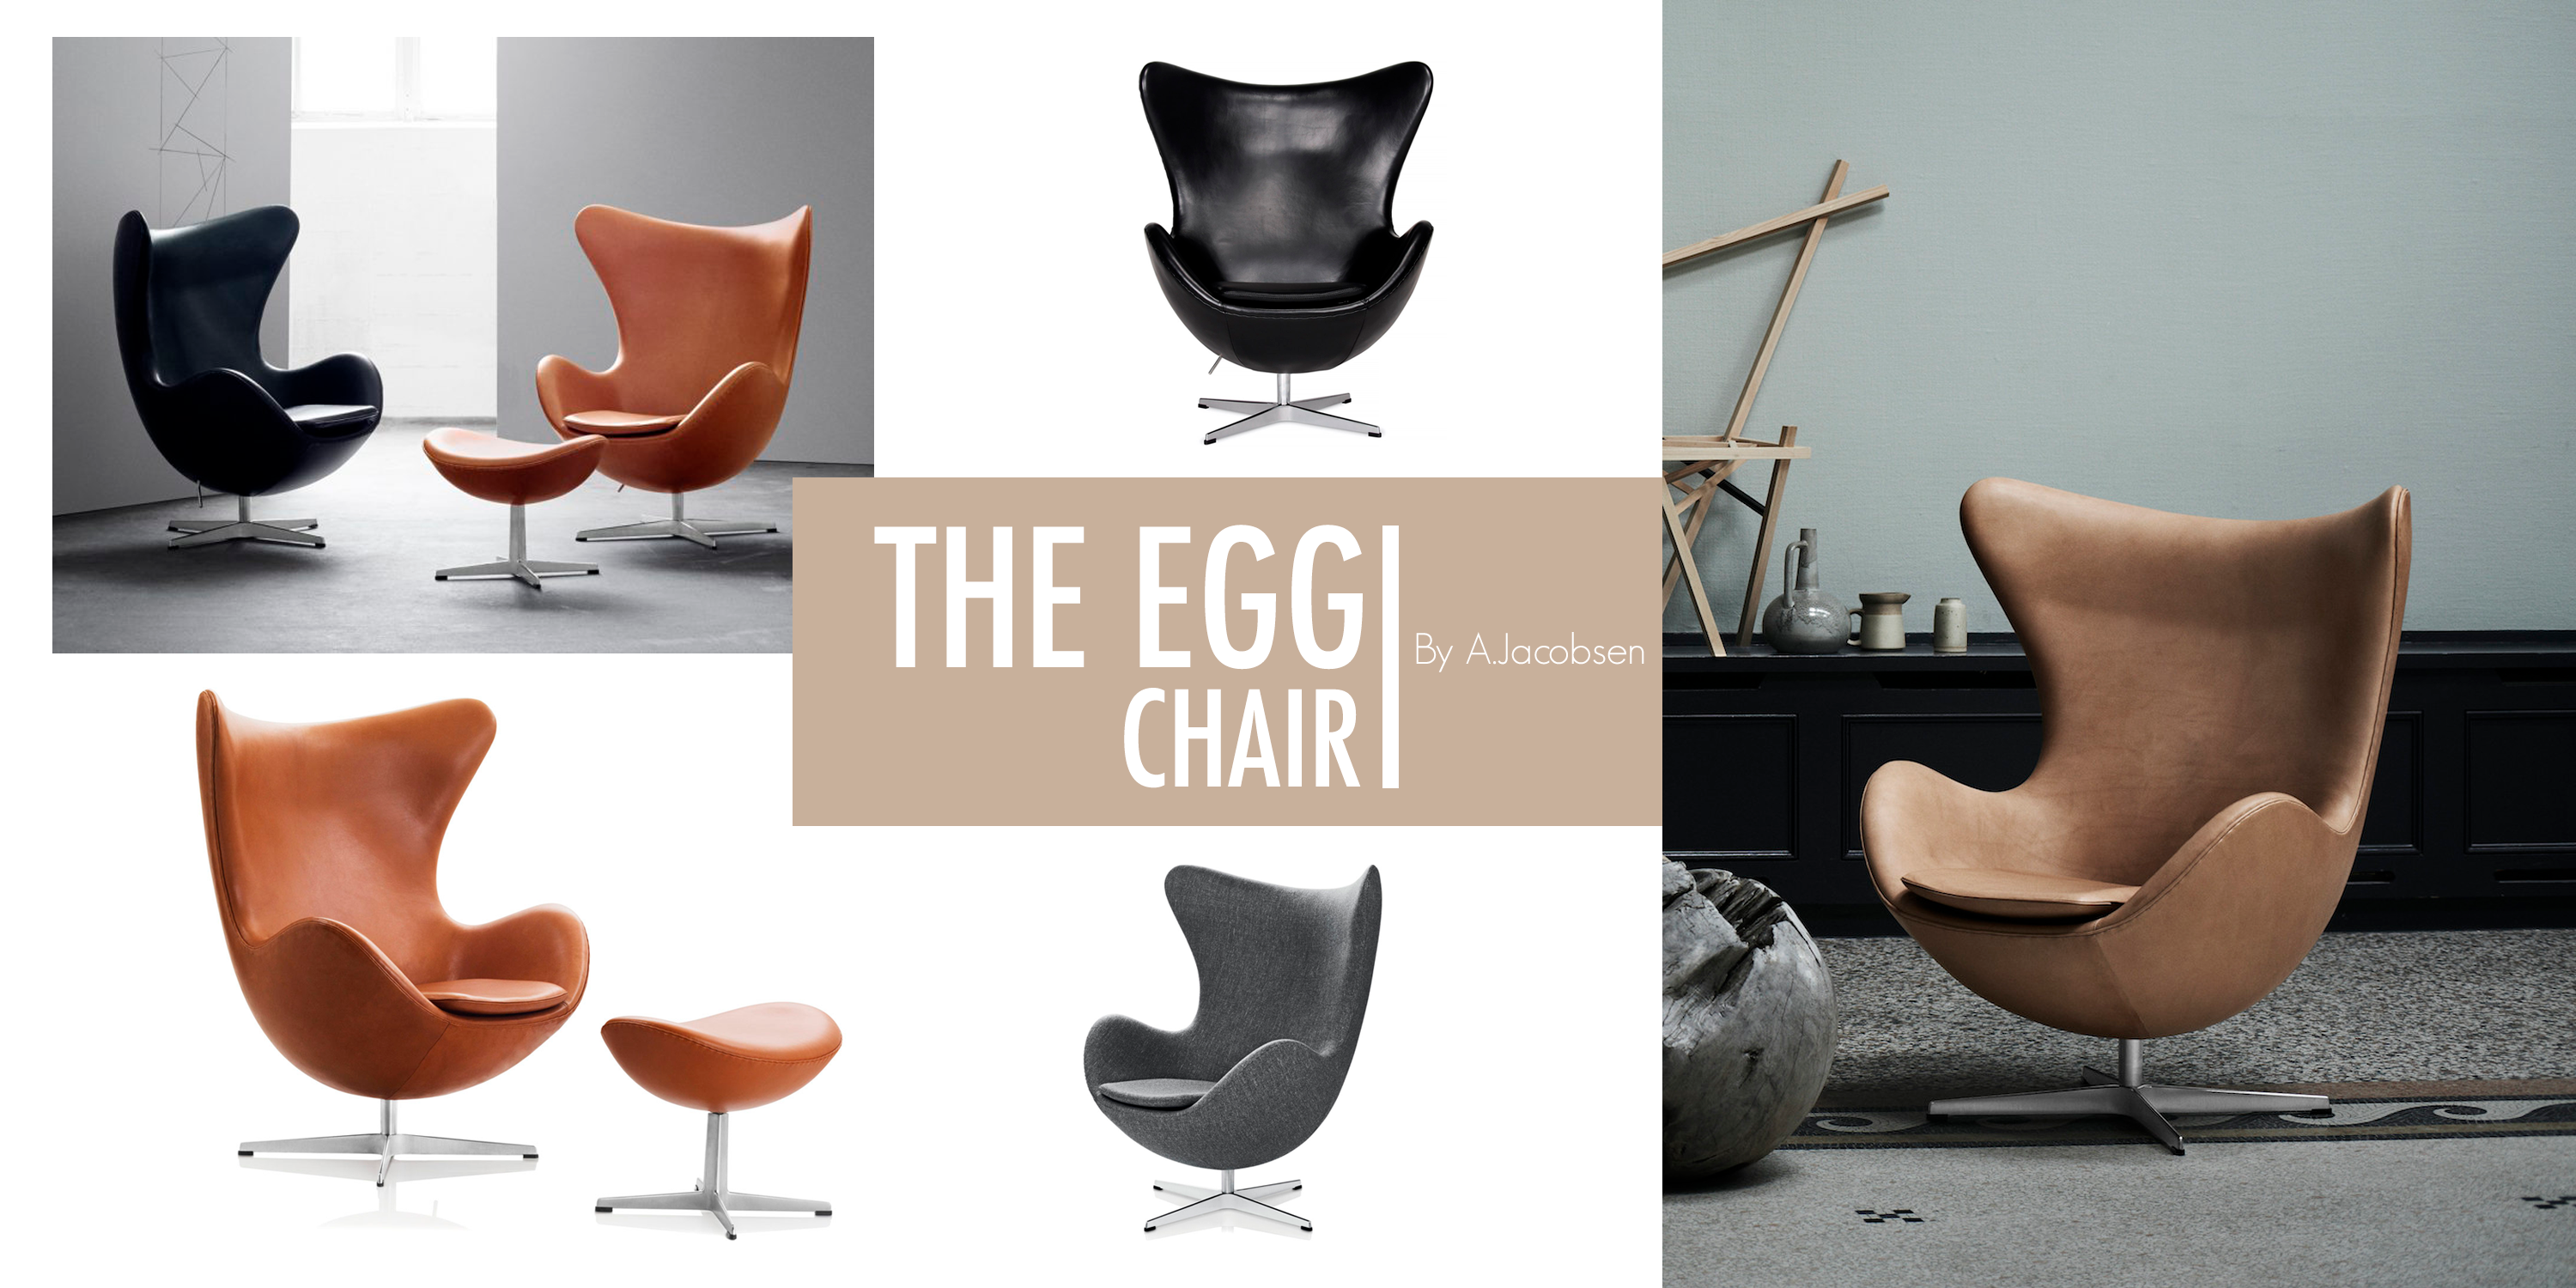 ``The Egg`` by Arne Jacobsen